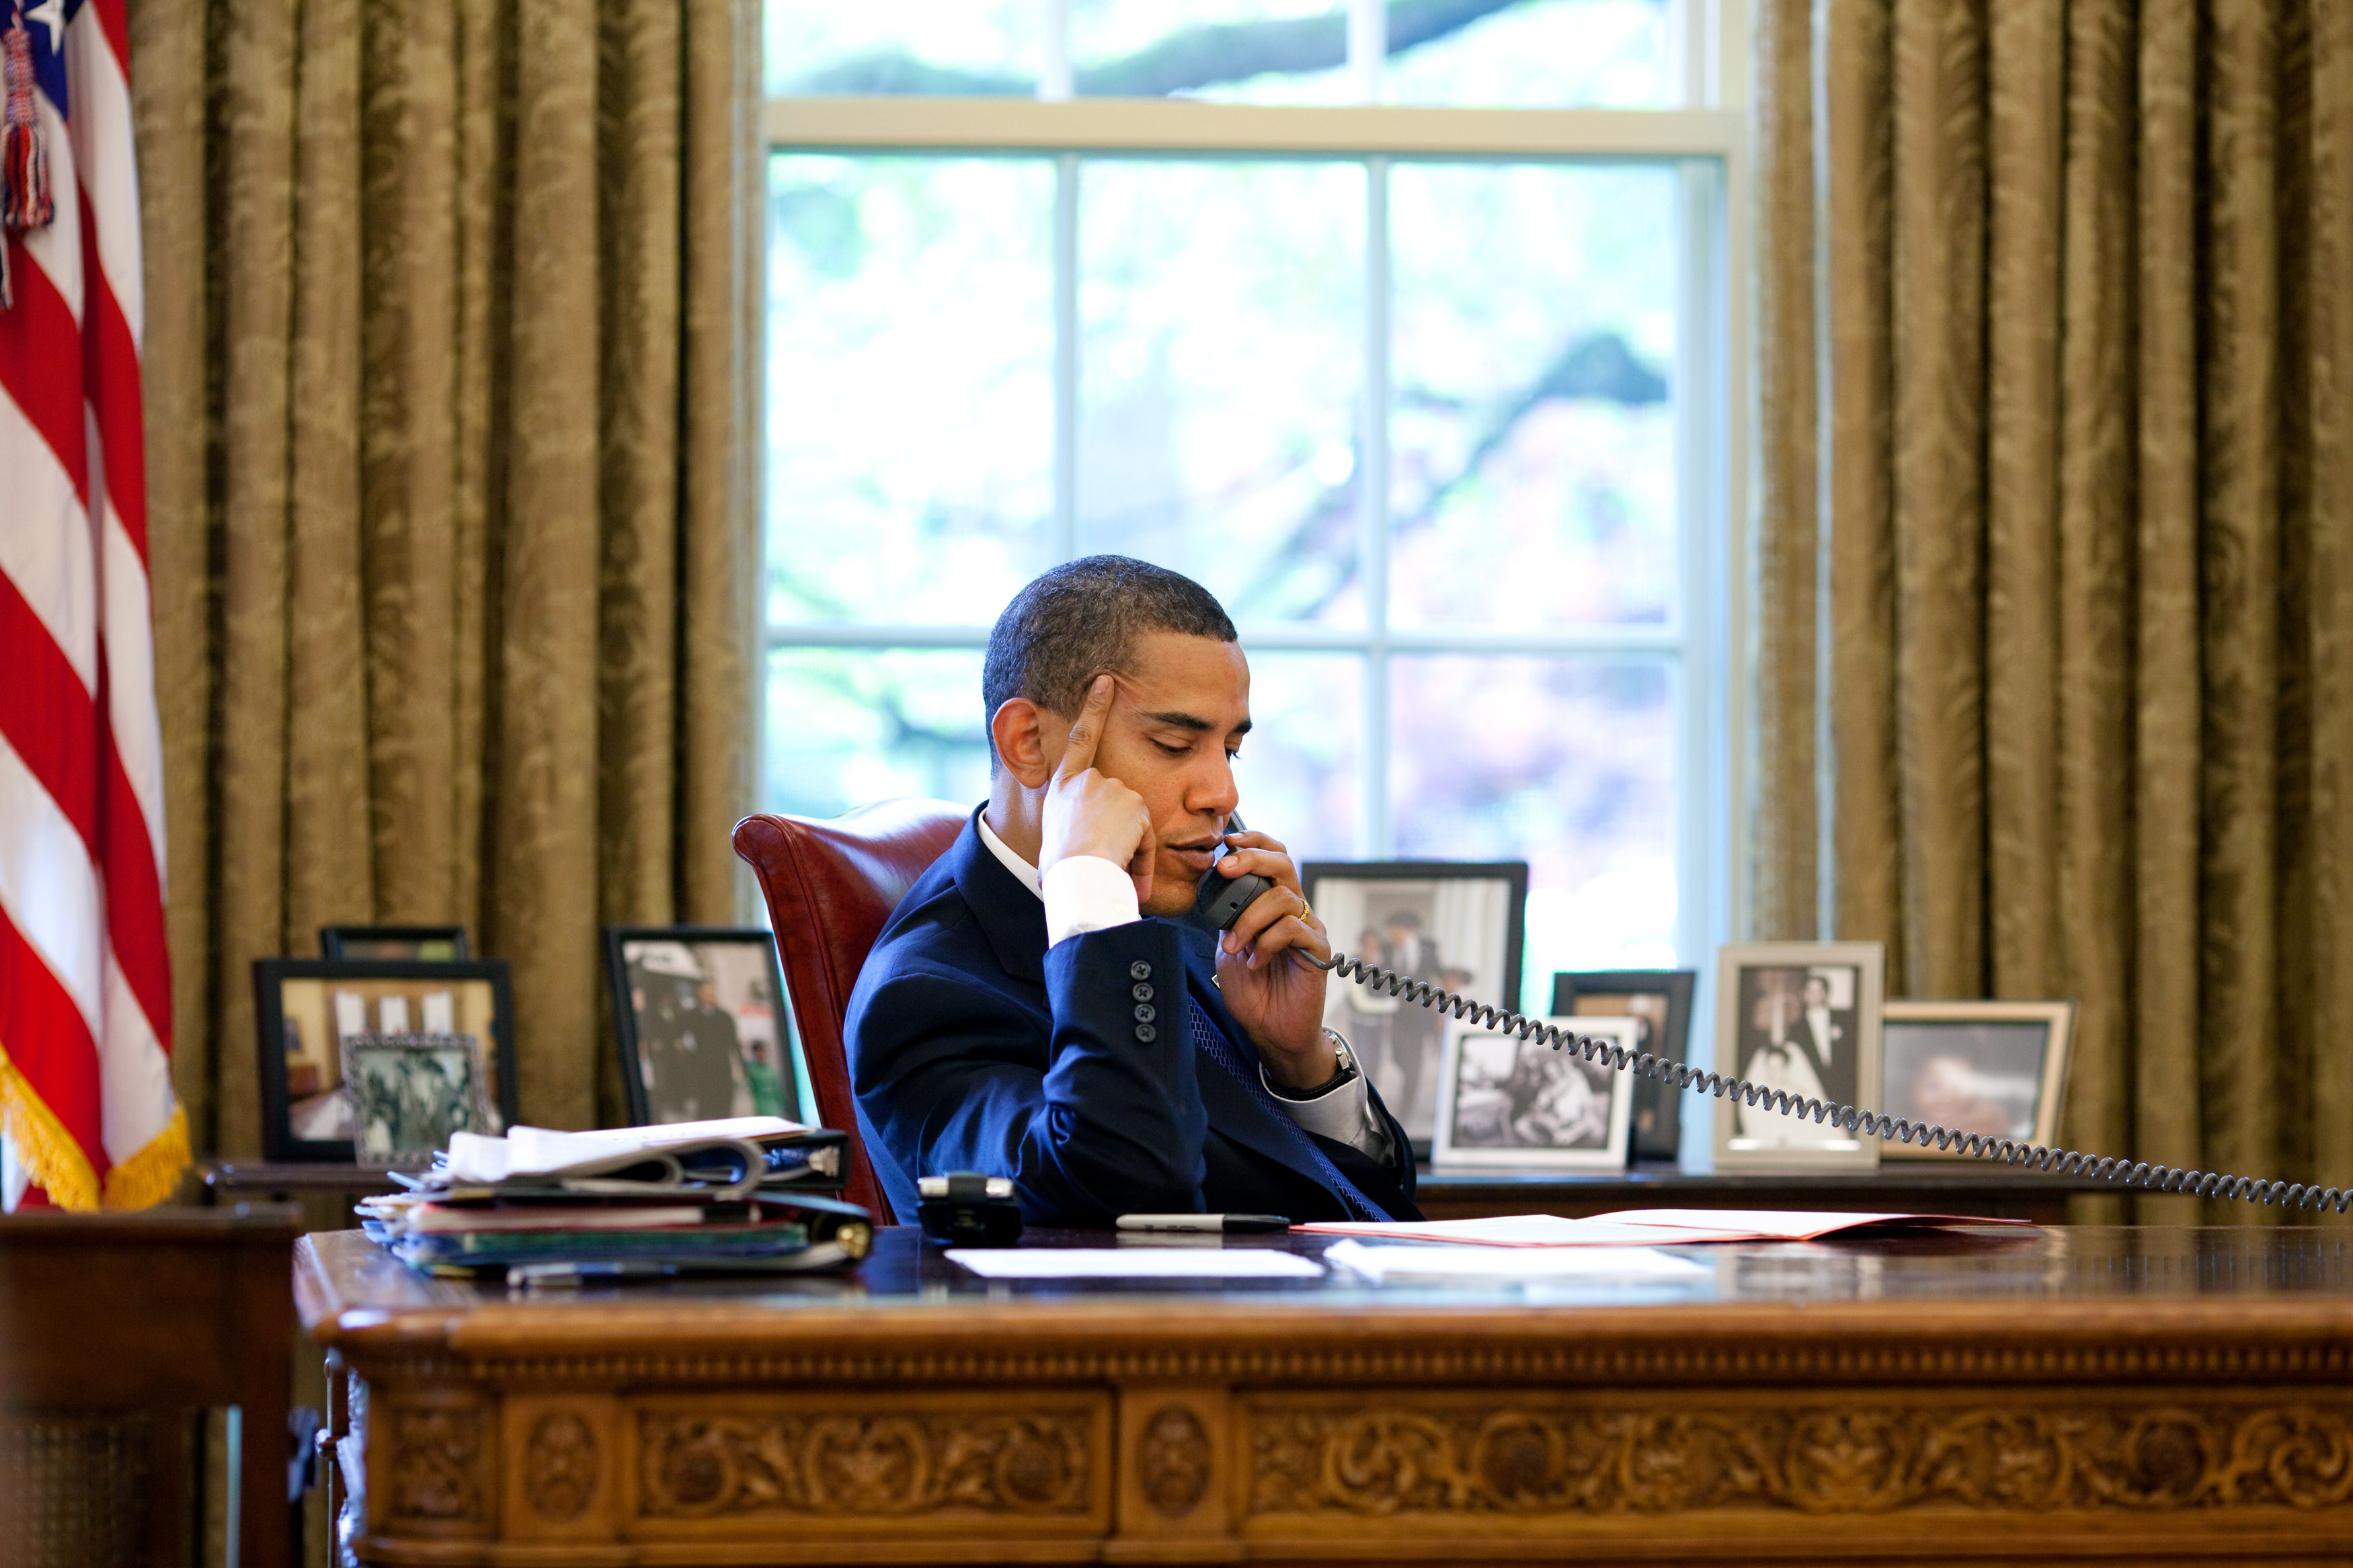 President Barack Obama sits at his desk in the  Oval Office during a phone call with Chinese President Hu Jintao May 6, 2009. Official White House Photo by Pete Souza.  This official White House photograph is being made available for publication by news organizations and/or for personal use printing by the subject(s) of the photograph. The photograph may not be manipulated in any way or used in materials, advertisements, products, or promotions that in any way suggest approval or endorsement of the President, the First Family, or the White House.